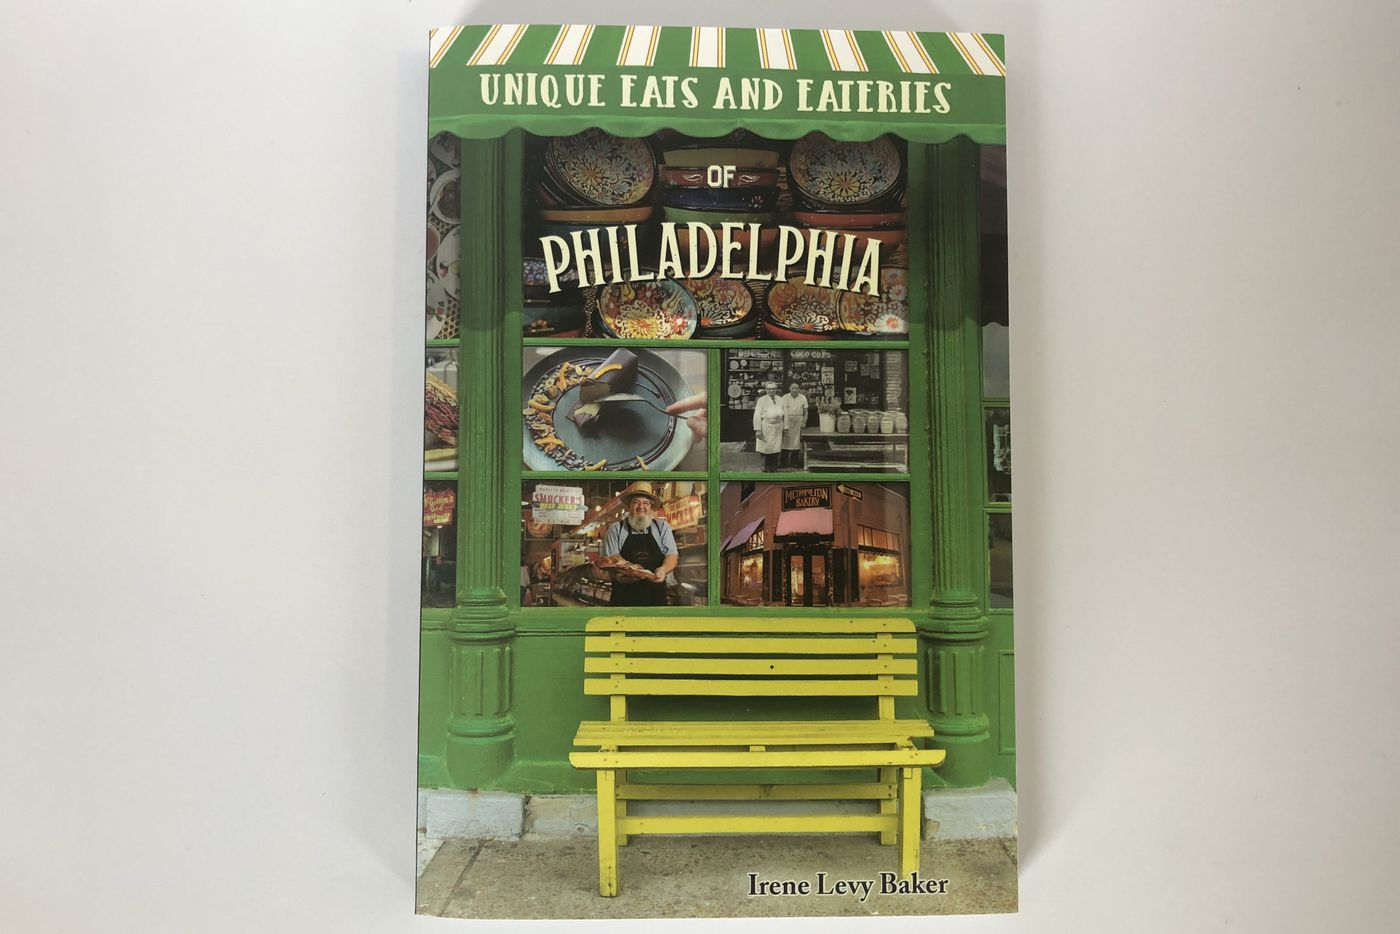 From speakeasies to wooder ice, new book tells the history of Philly's restaurant scene